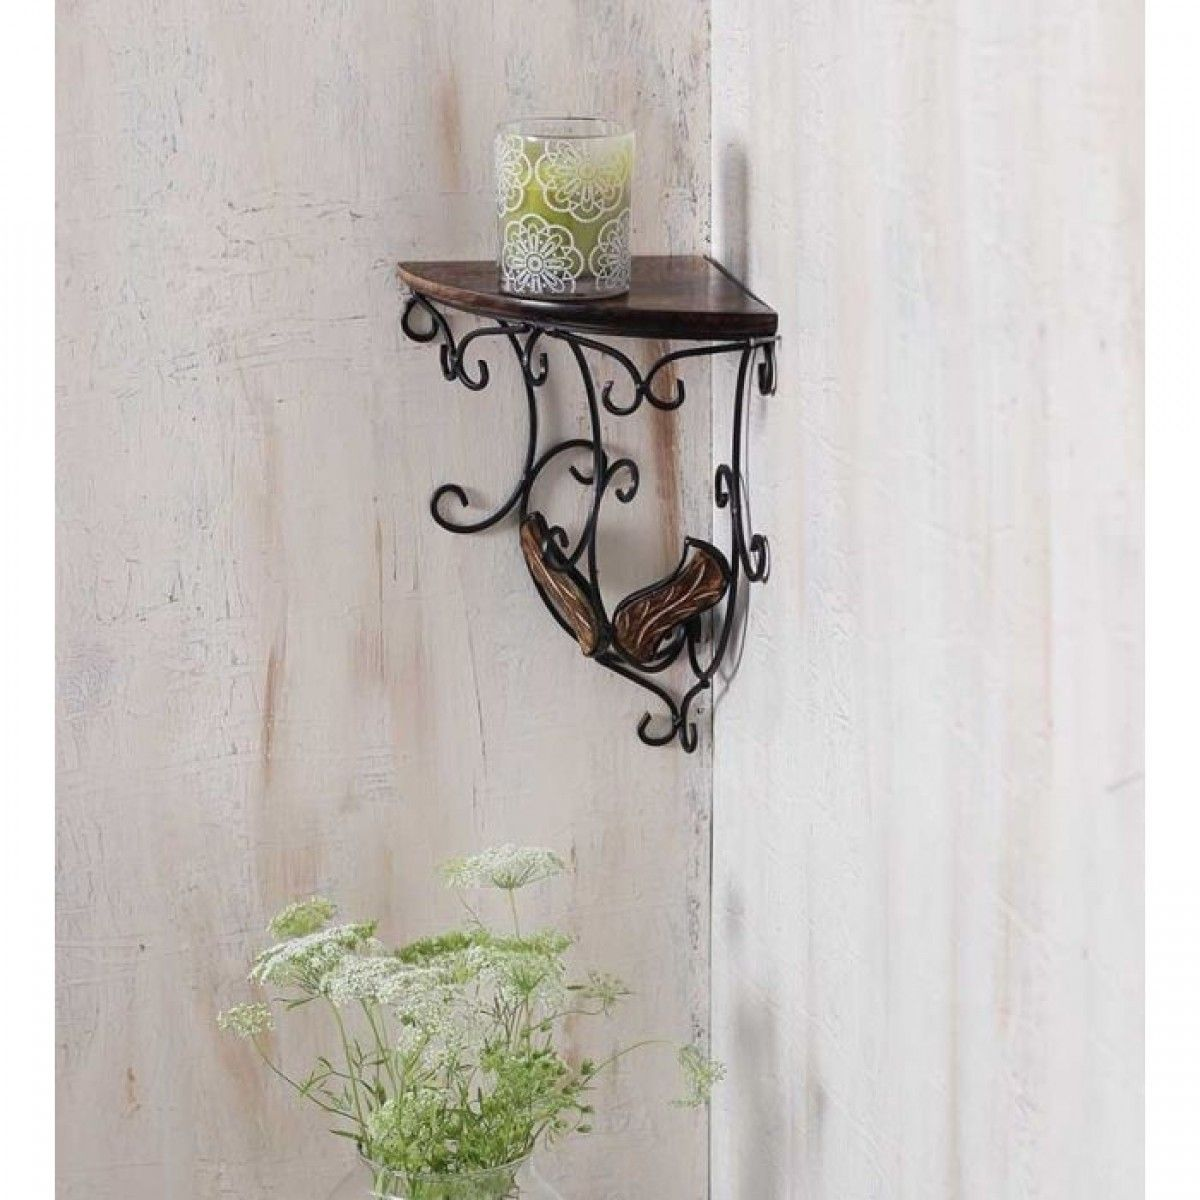 Onlineshoppee Beautiful Wooden Decorative Corner Wall Hanging Bracket  Shelf/selves For Living Room/Bed Room Decoration   Wall Shelves   Home Decor    Home U0026 ...